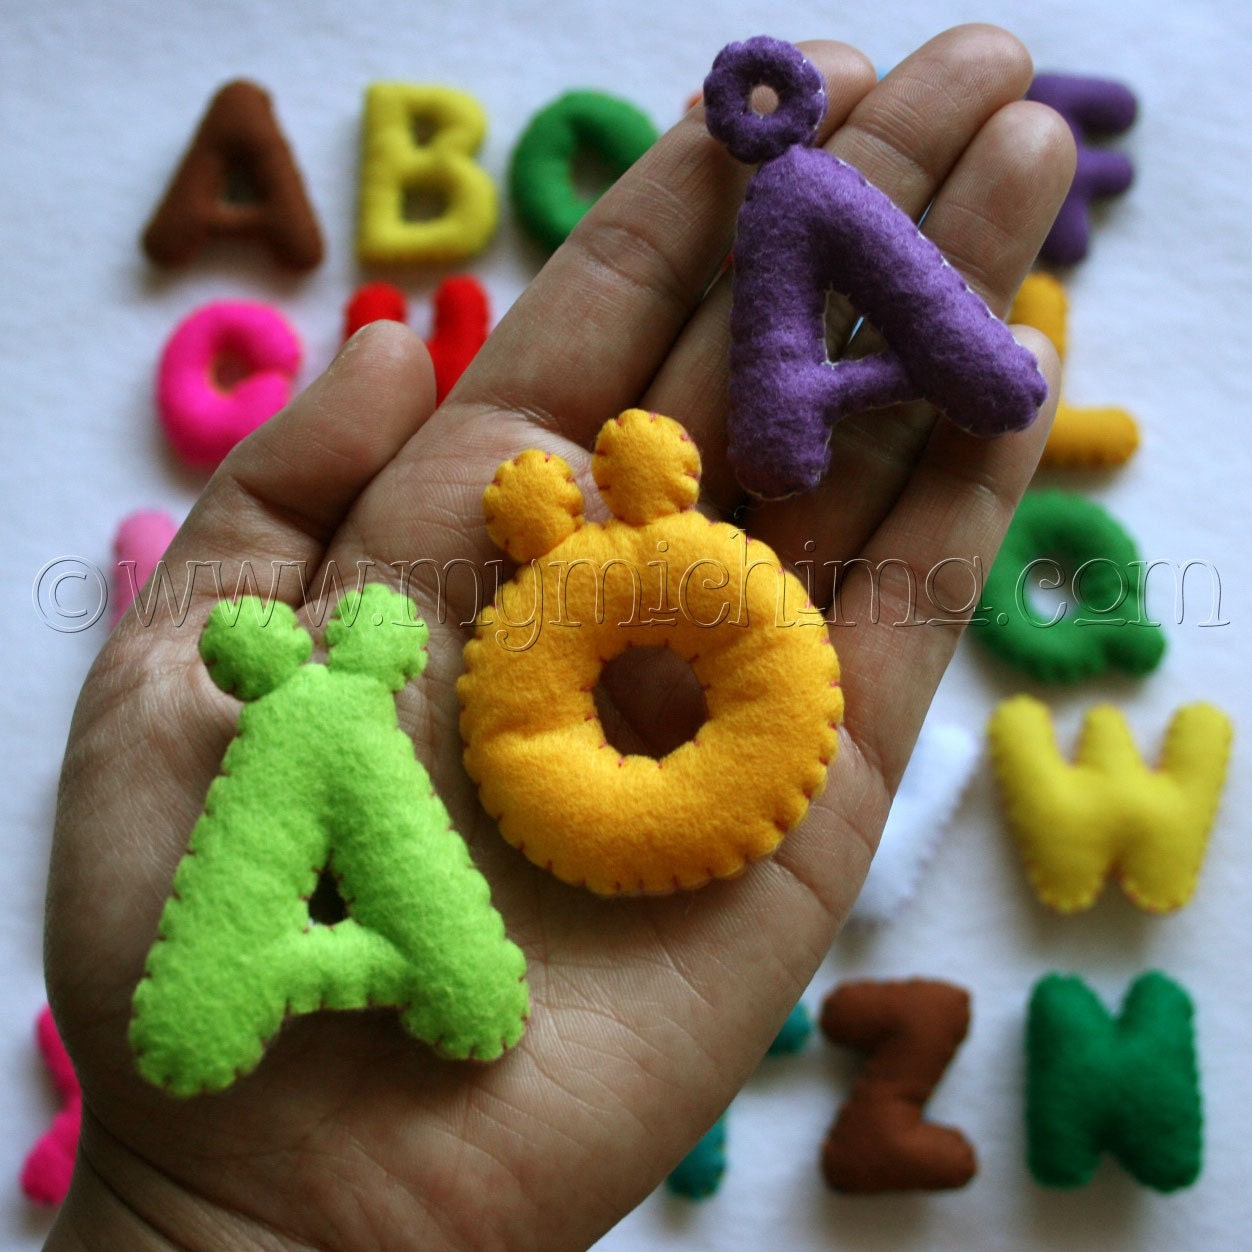 Stuffed Felt Swedish Alphabet Letter Set in a Drawstring Bag - Upper or Lower Case Letters